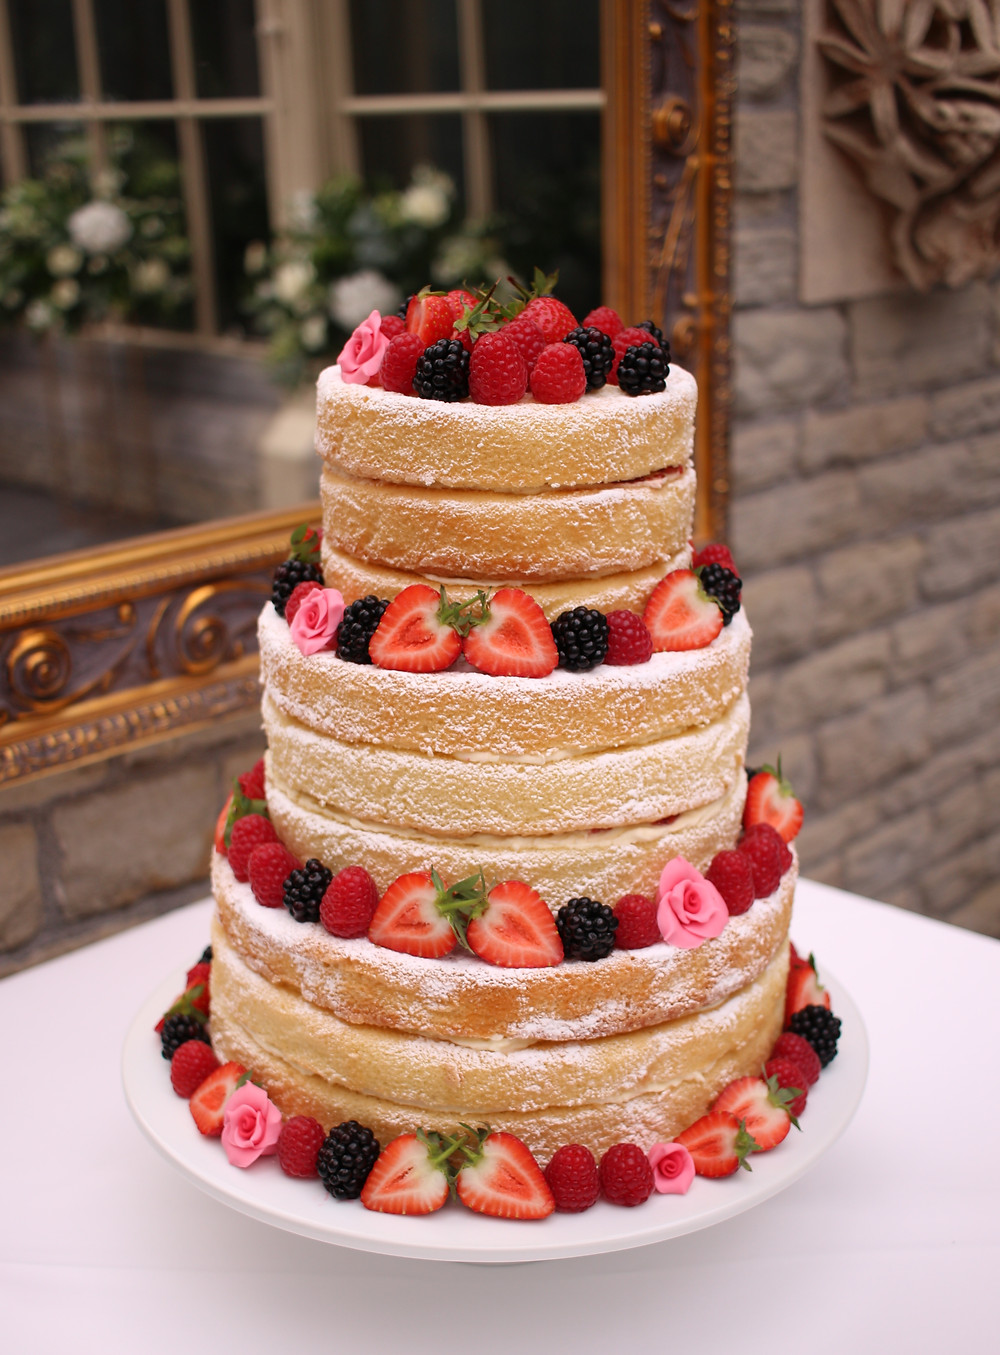 Gluten-free & dairy-free wedding cake by The Local Bakehouse